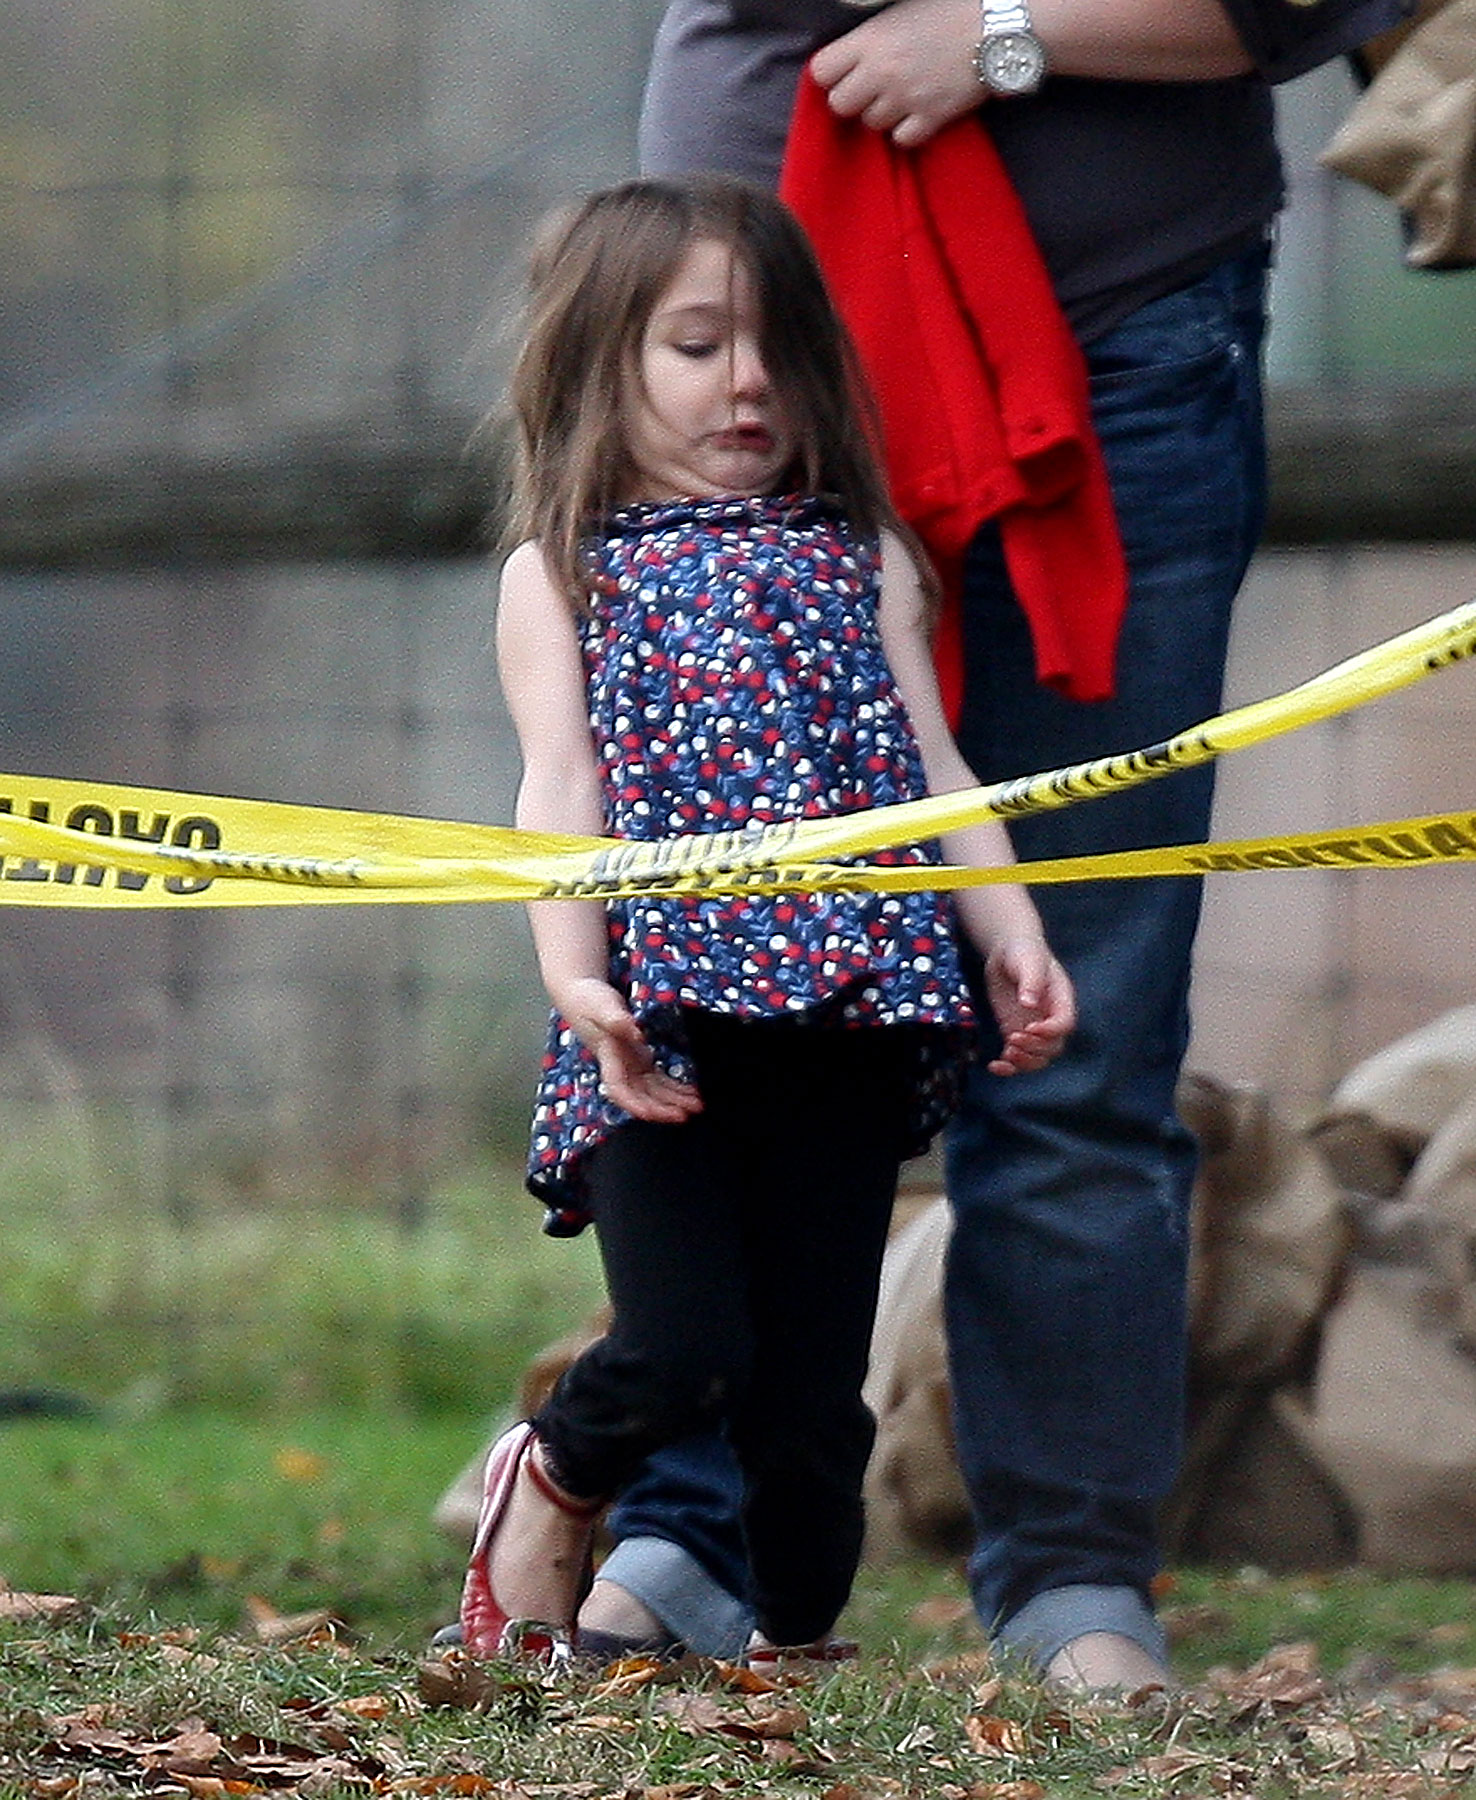 PHOTO GALLERY: Suri Cruise Entertains Herself, And Us